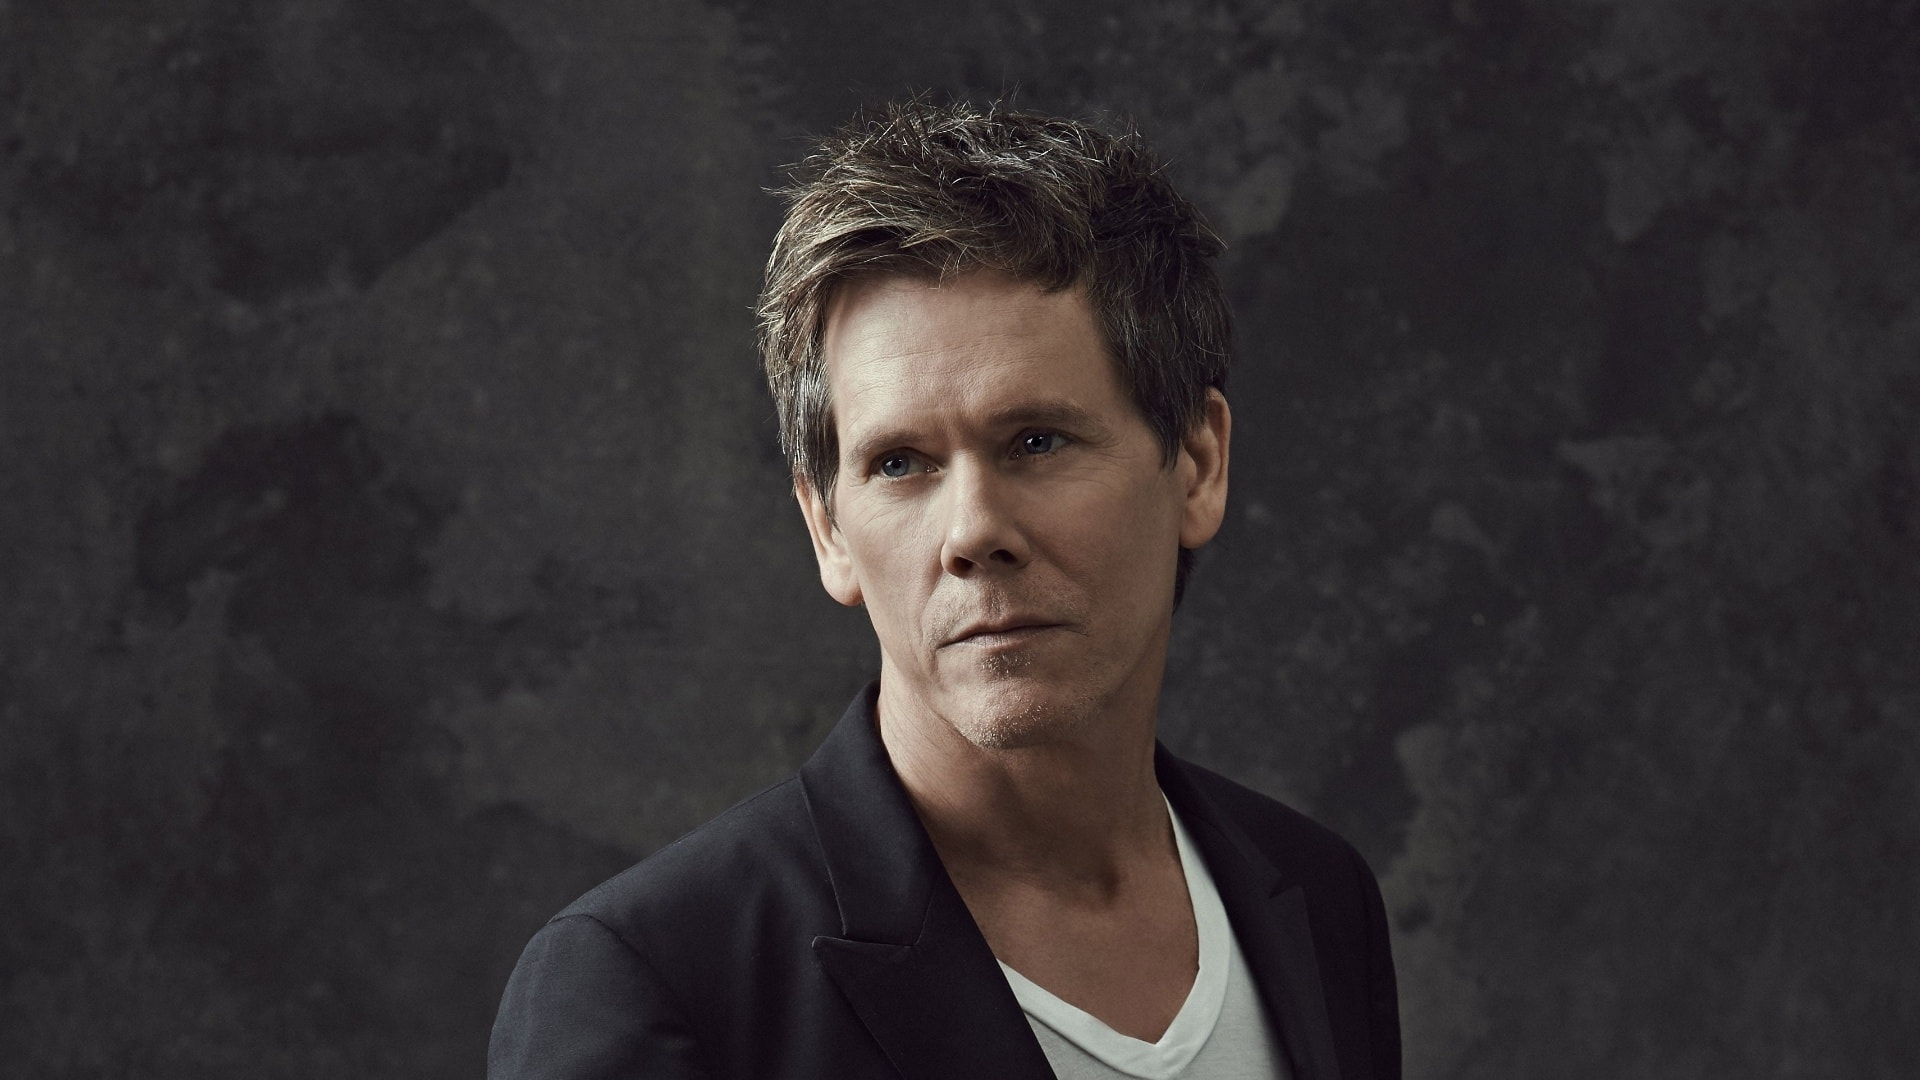 1920x1080 - Kevin Bacon Wallpapers 2